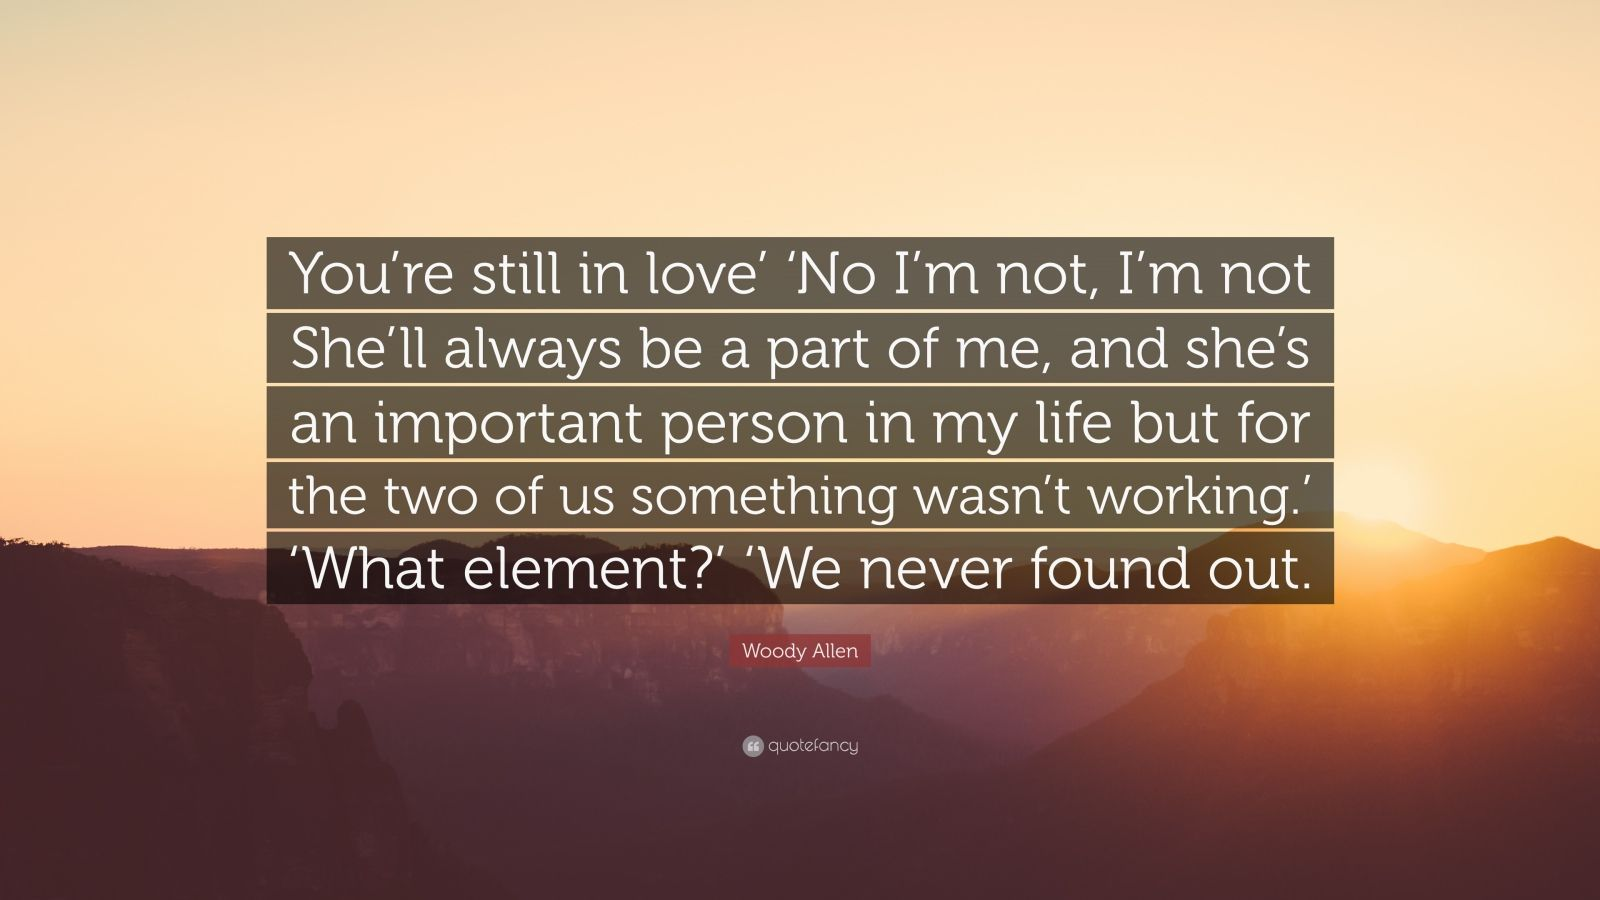 """Woody Allen Quote: """"You're still in love' 'No I'm not, I'm not She'll always be a part of me, and she's an important person in my life but for the two of us something wasn't working.' 'What element?' 'We never found out."""""""